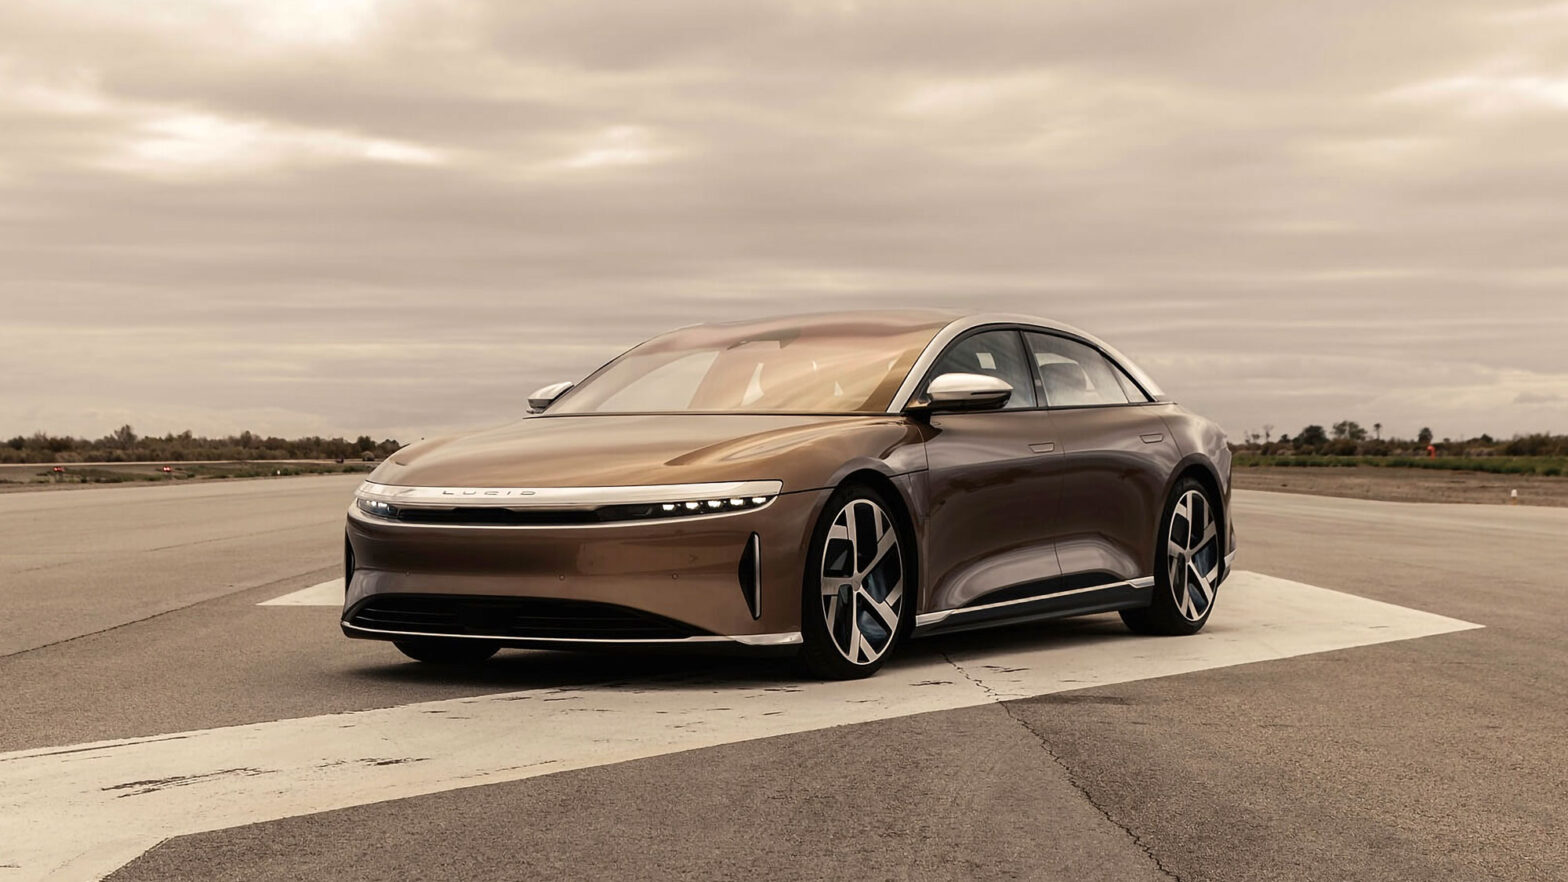 Lucid Air Luxury Electric Vehicle Price and Specs